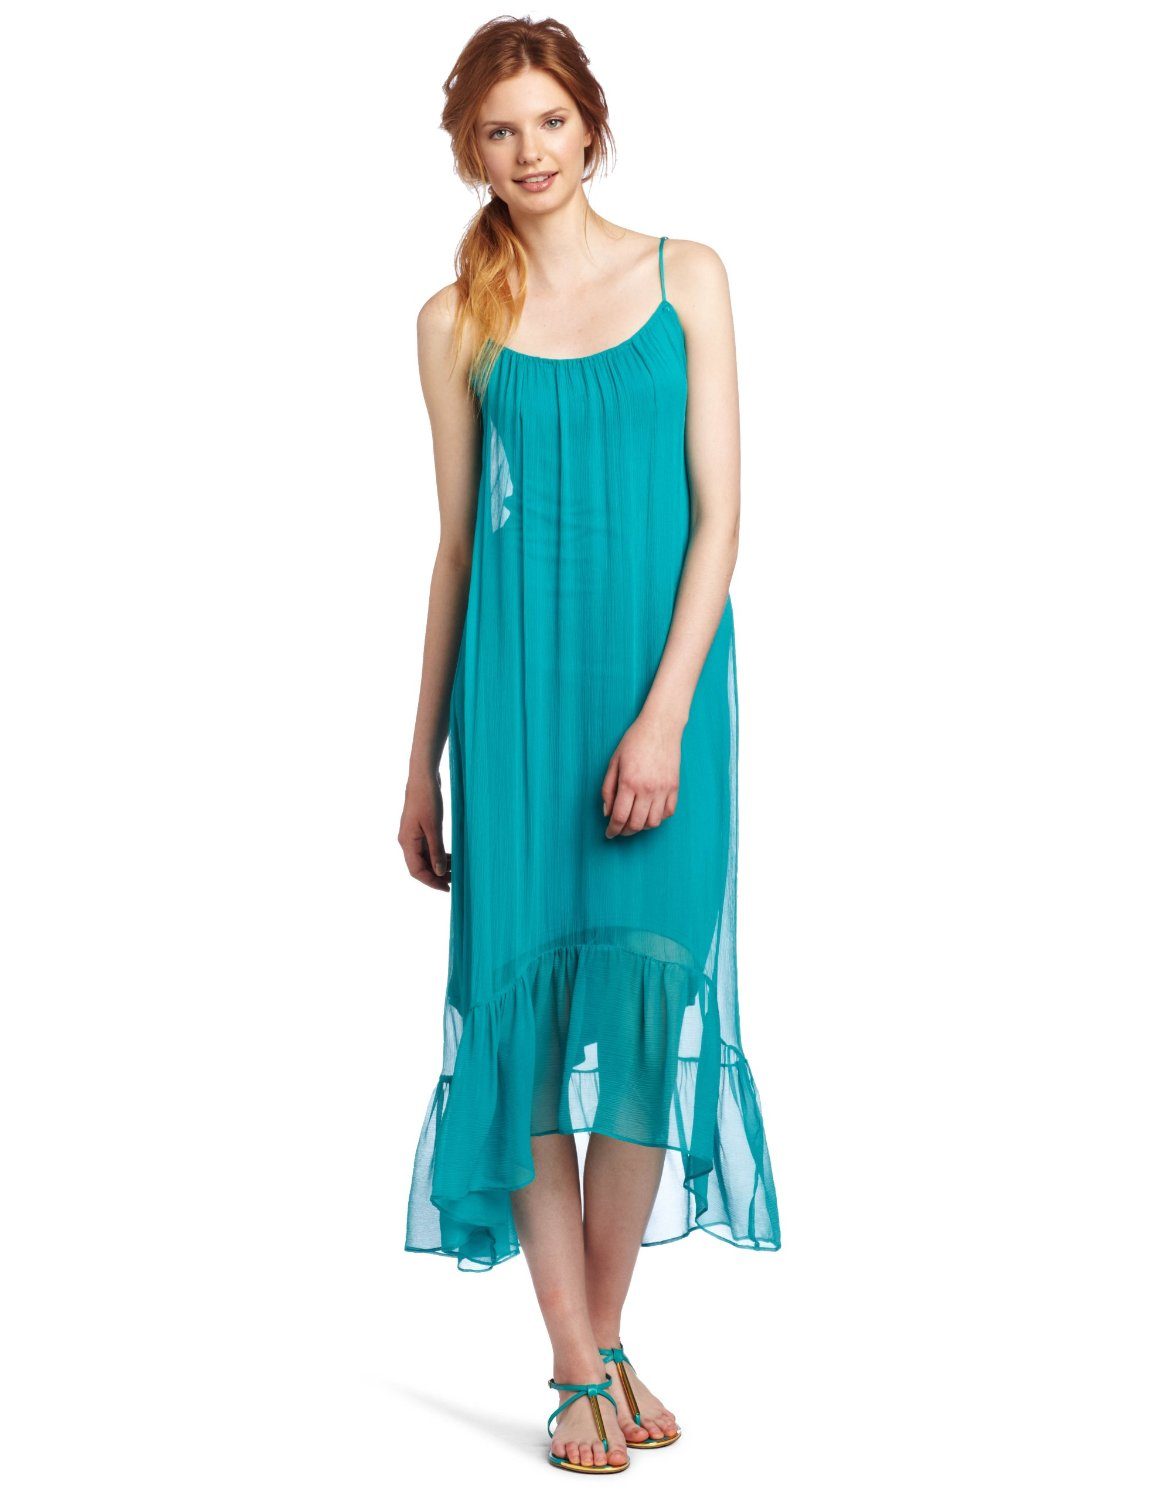 Aqua High Low Cascade Dress from Twelfth St. by Cynthia Vincent